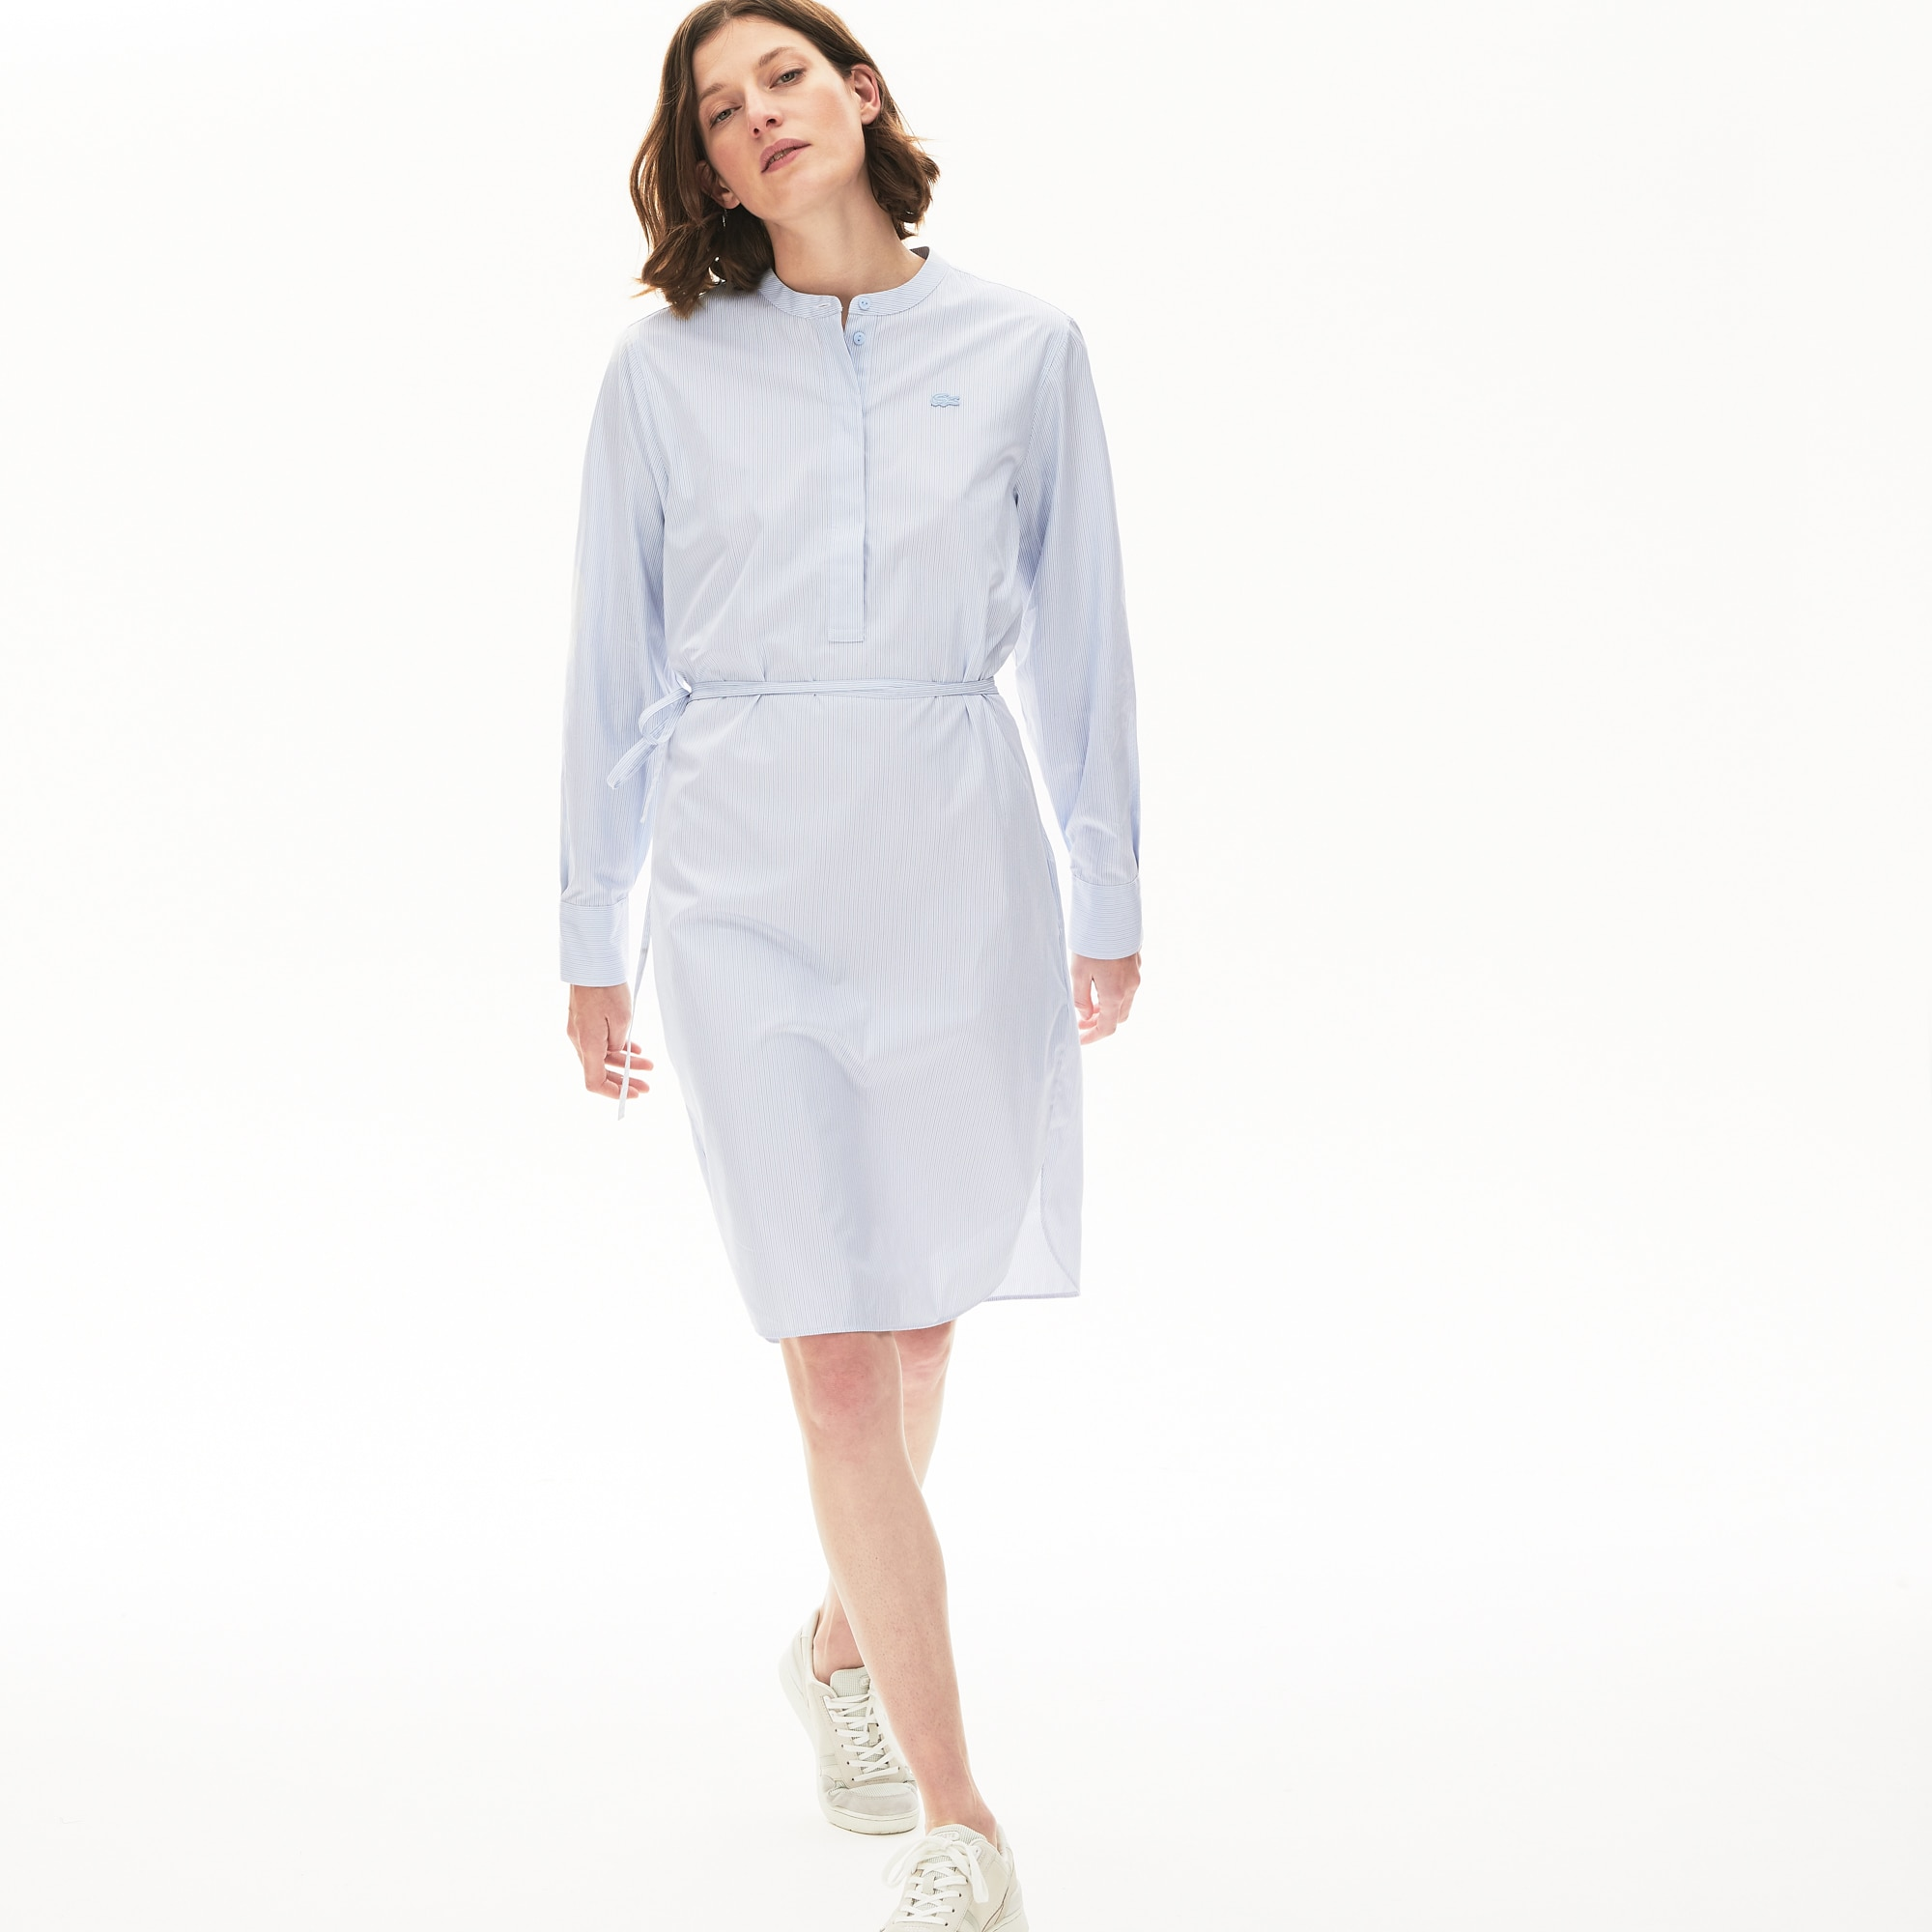 라코스테 코튼 셔츠 원피스 Lacoste Womens Cotton Shirt Dress, Light Blue / White / Navy Blue